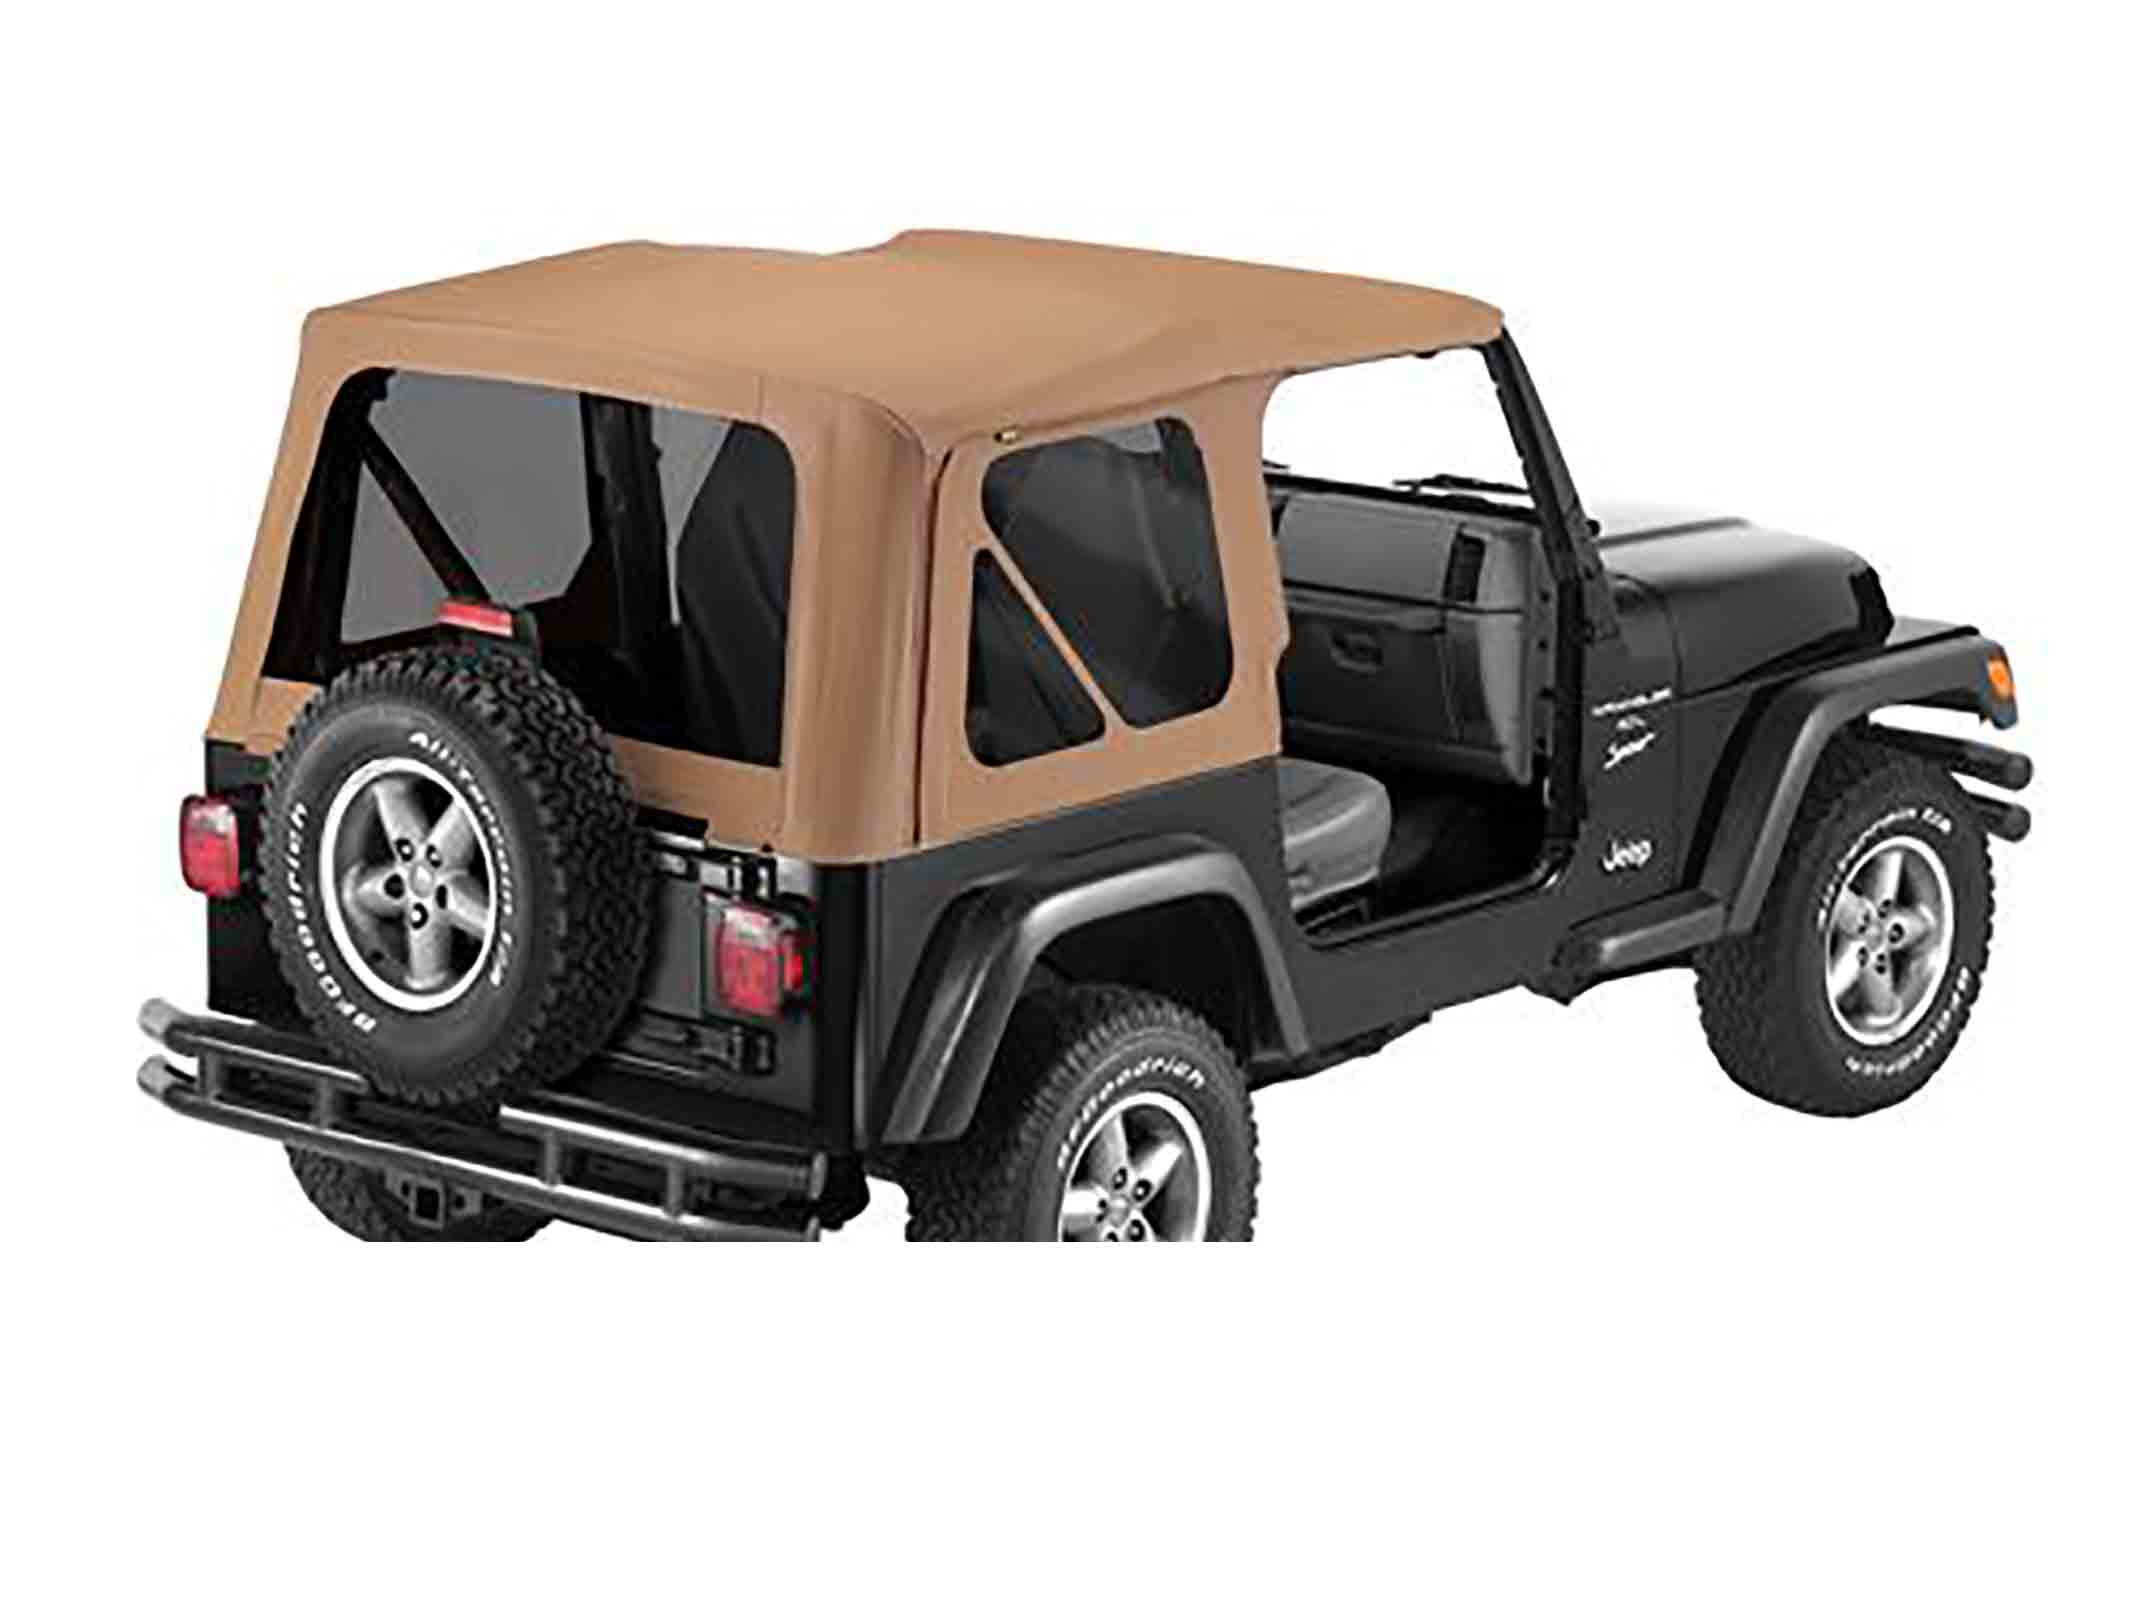 Softtop soft top capottina ricambio come originale wrangler tj 96 02 senza porta ricambi jeep